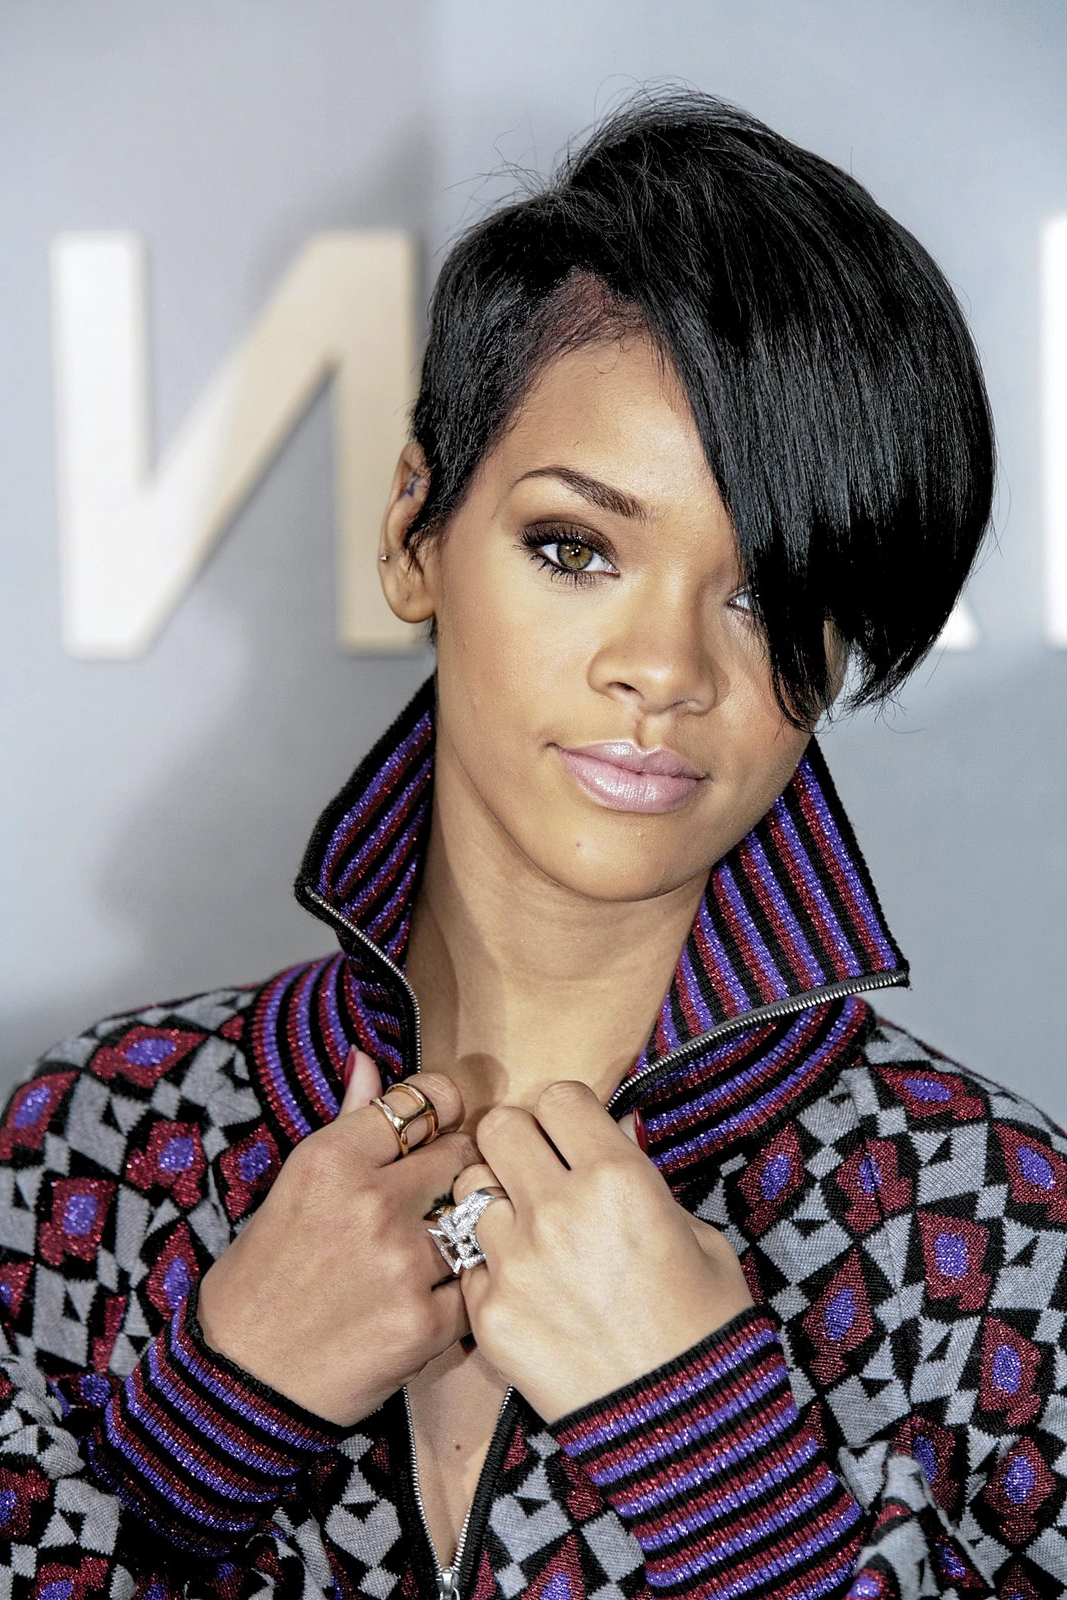 Pinterest Short Hairstyles For Black Hair – Hairstyle For Women & Man For Short Haircuts For Black Hair (View 25 of 25)